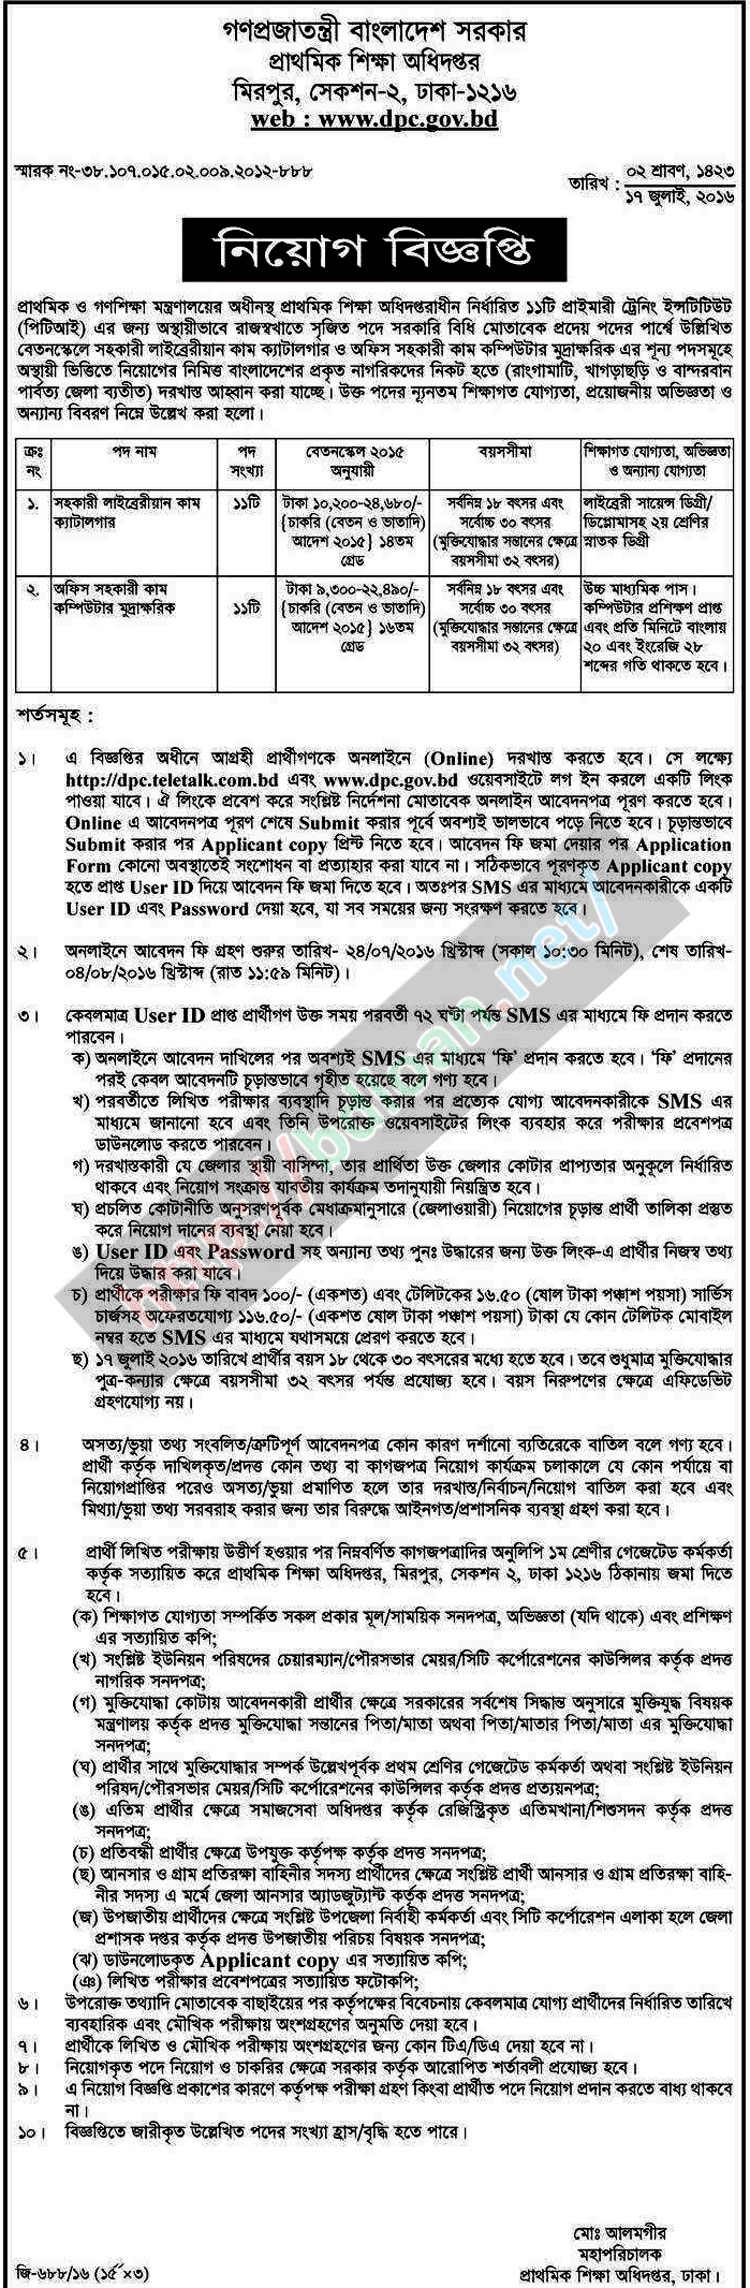 Directorate of Primary Education Job Circular 2016